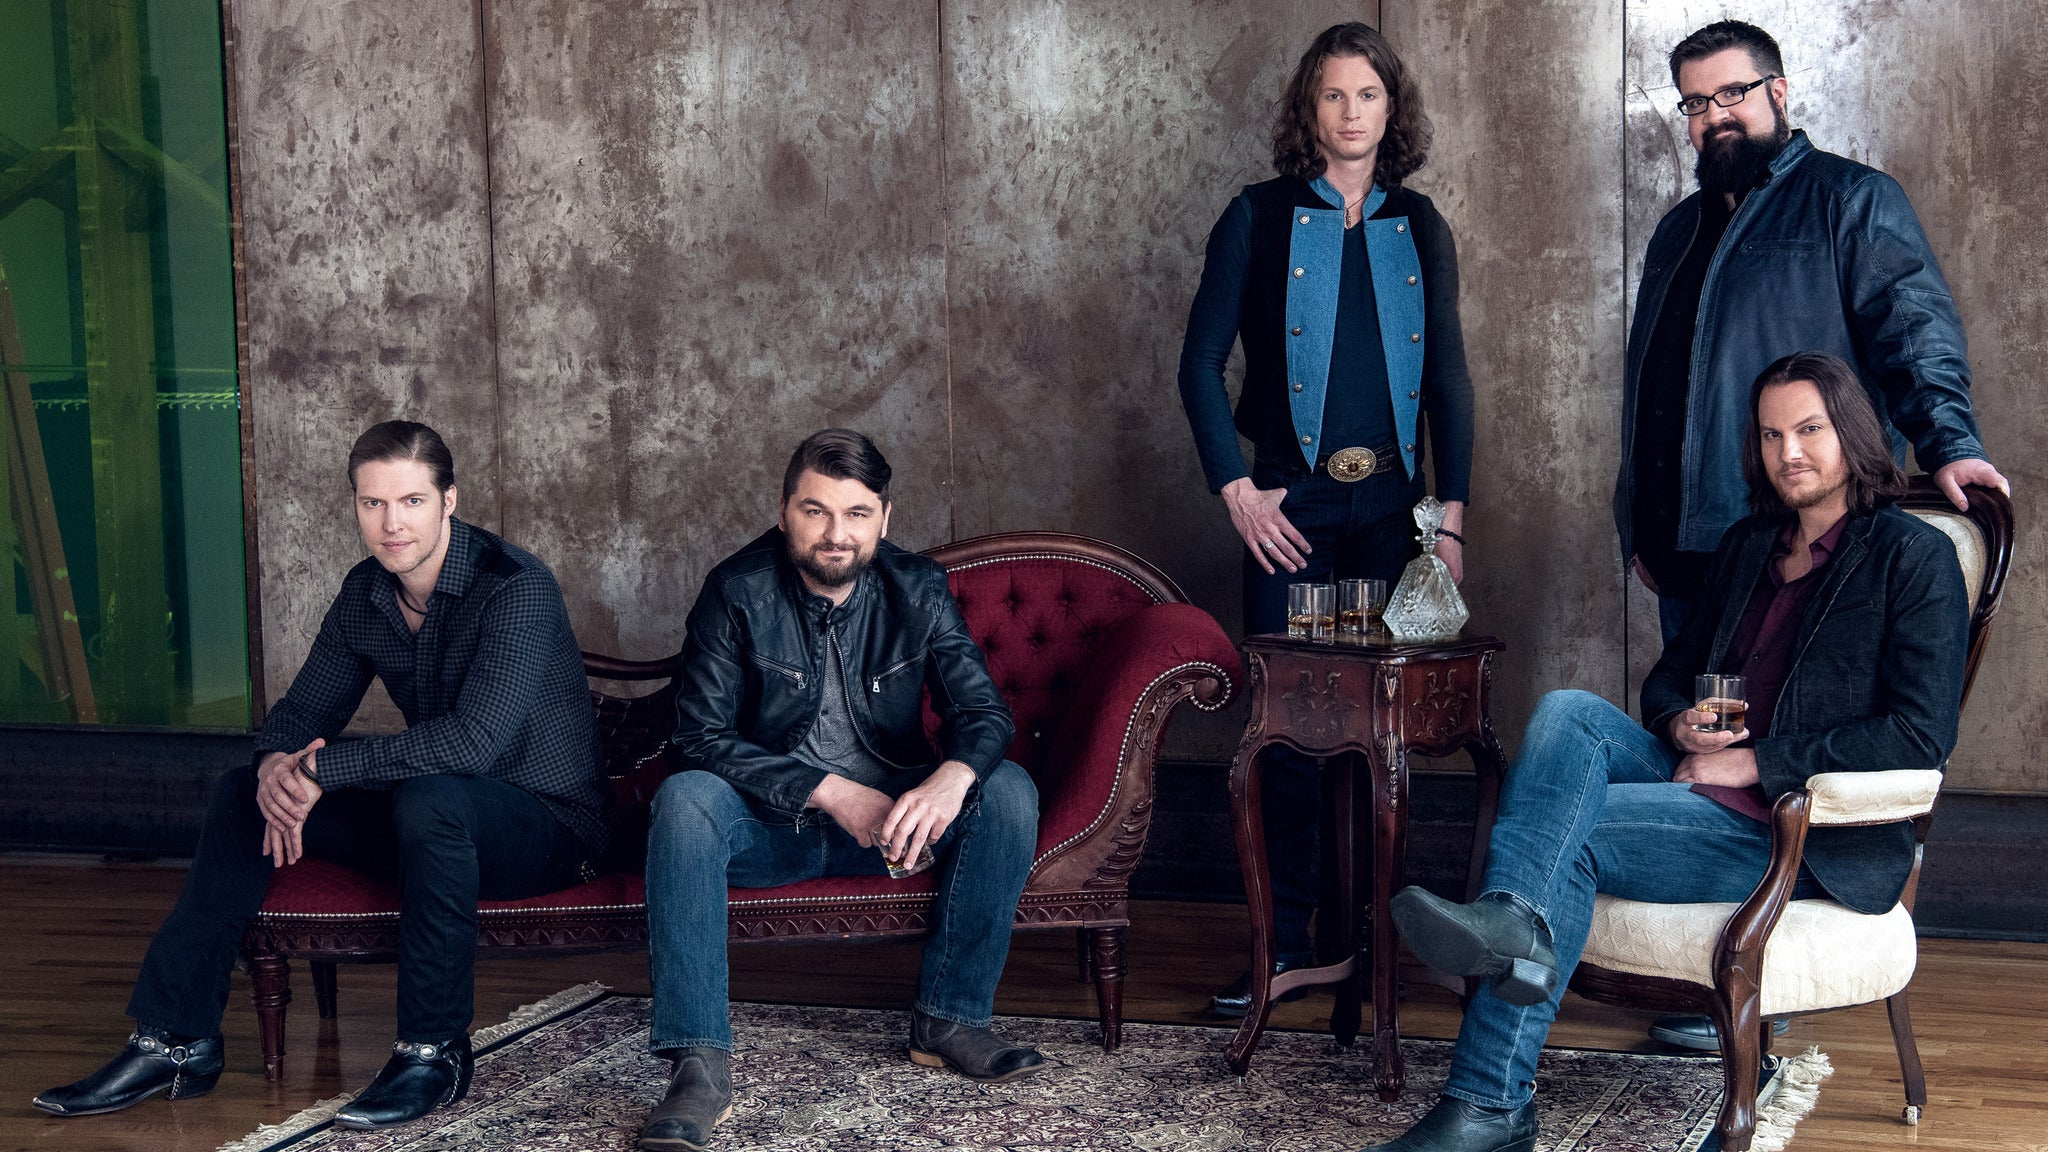 Home Free at Mesa Arts Center-Ikeda Theater